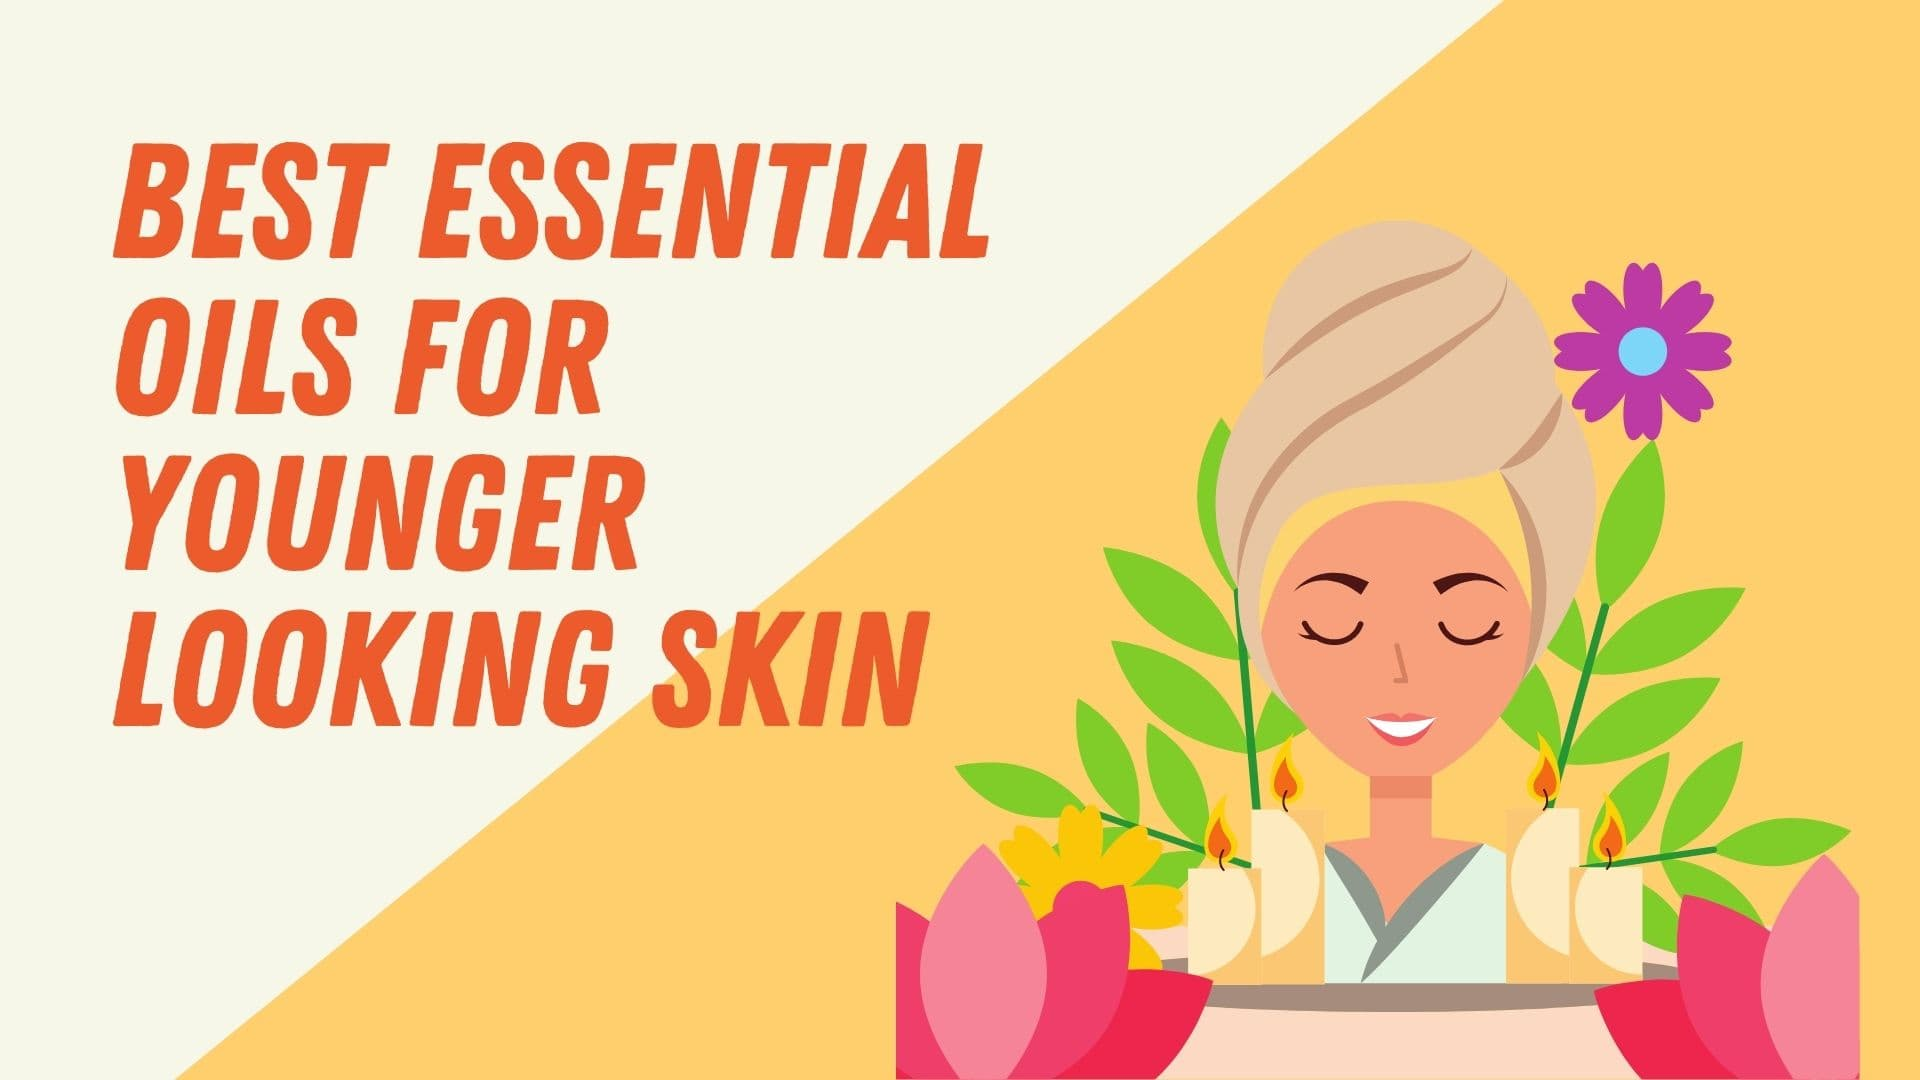 Best Essential oils for younger Looking skin